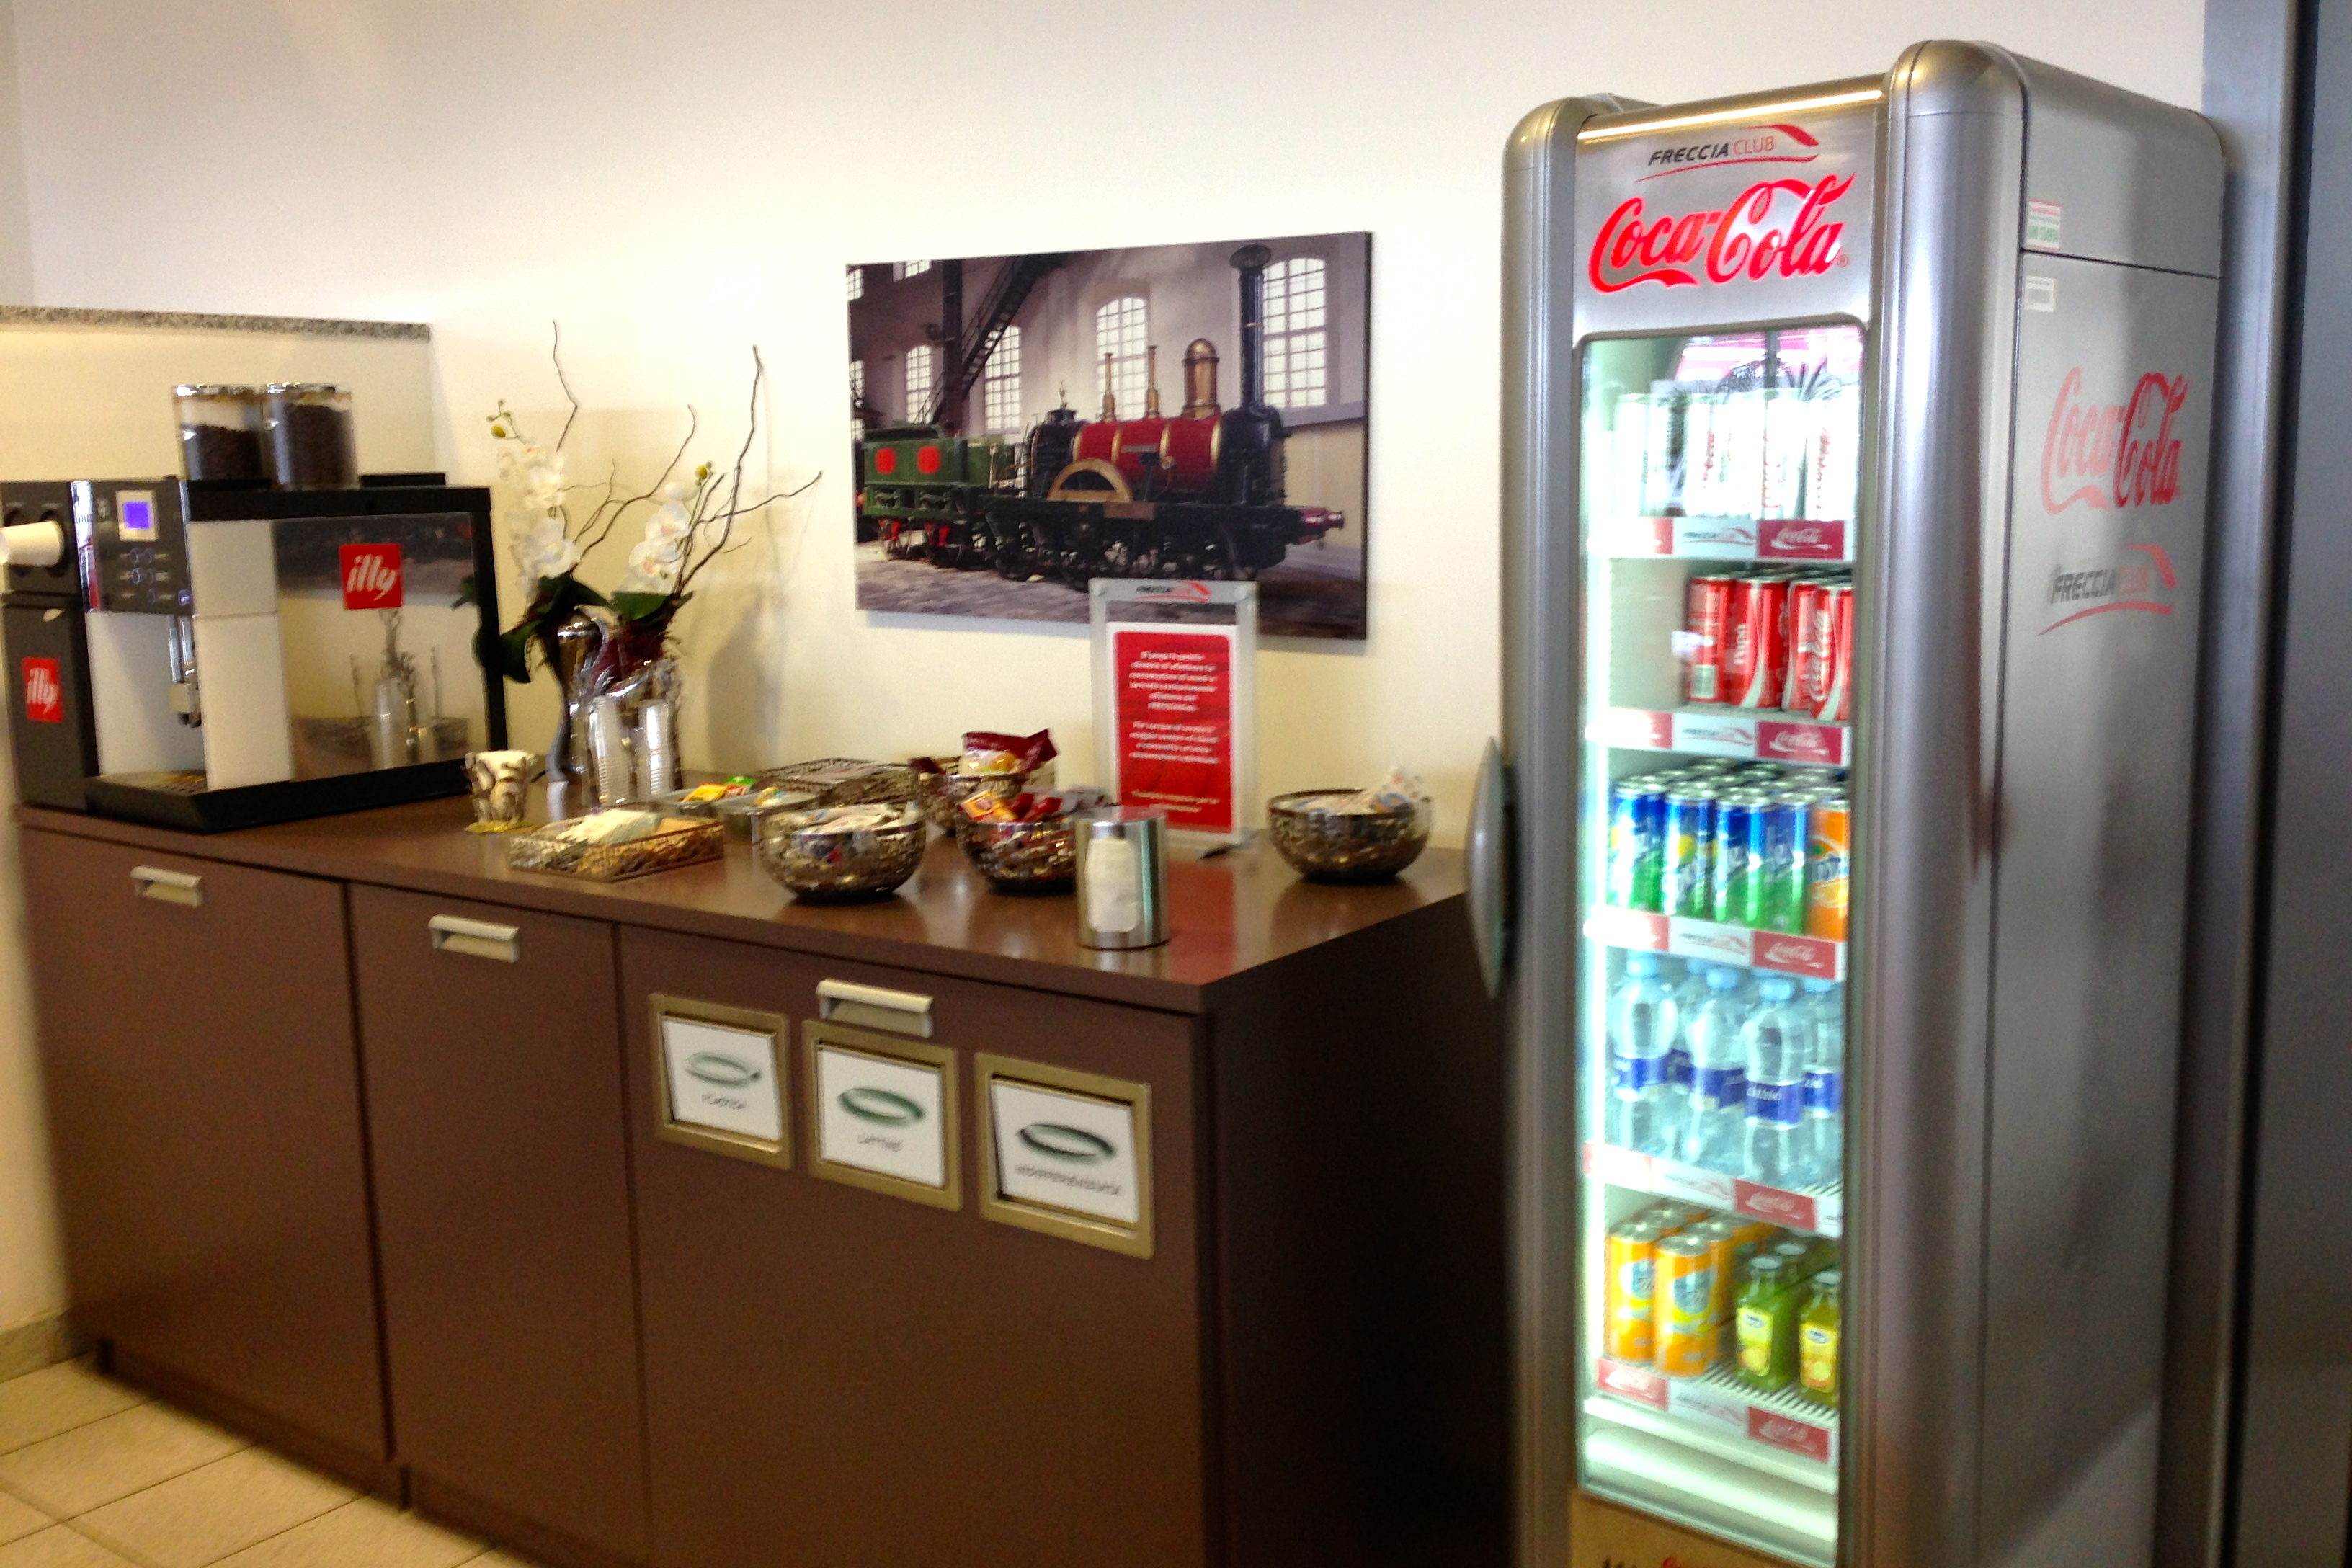 Trenitalia FrecciaClub Executive Lounge Naples Central Napoli Centrale Train Station Refreshments